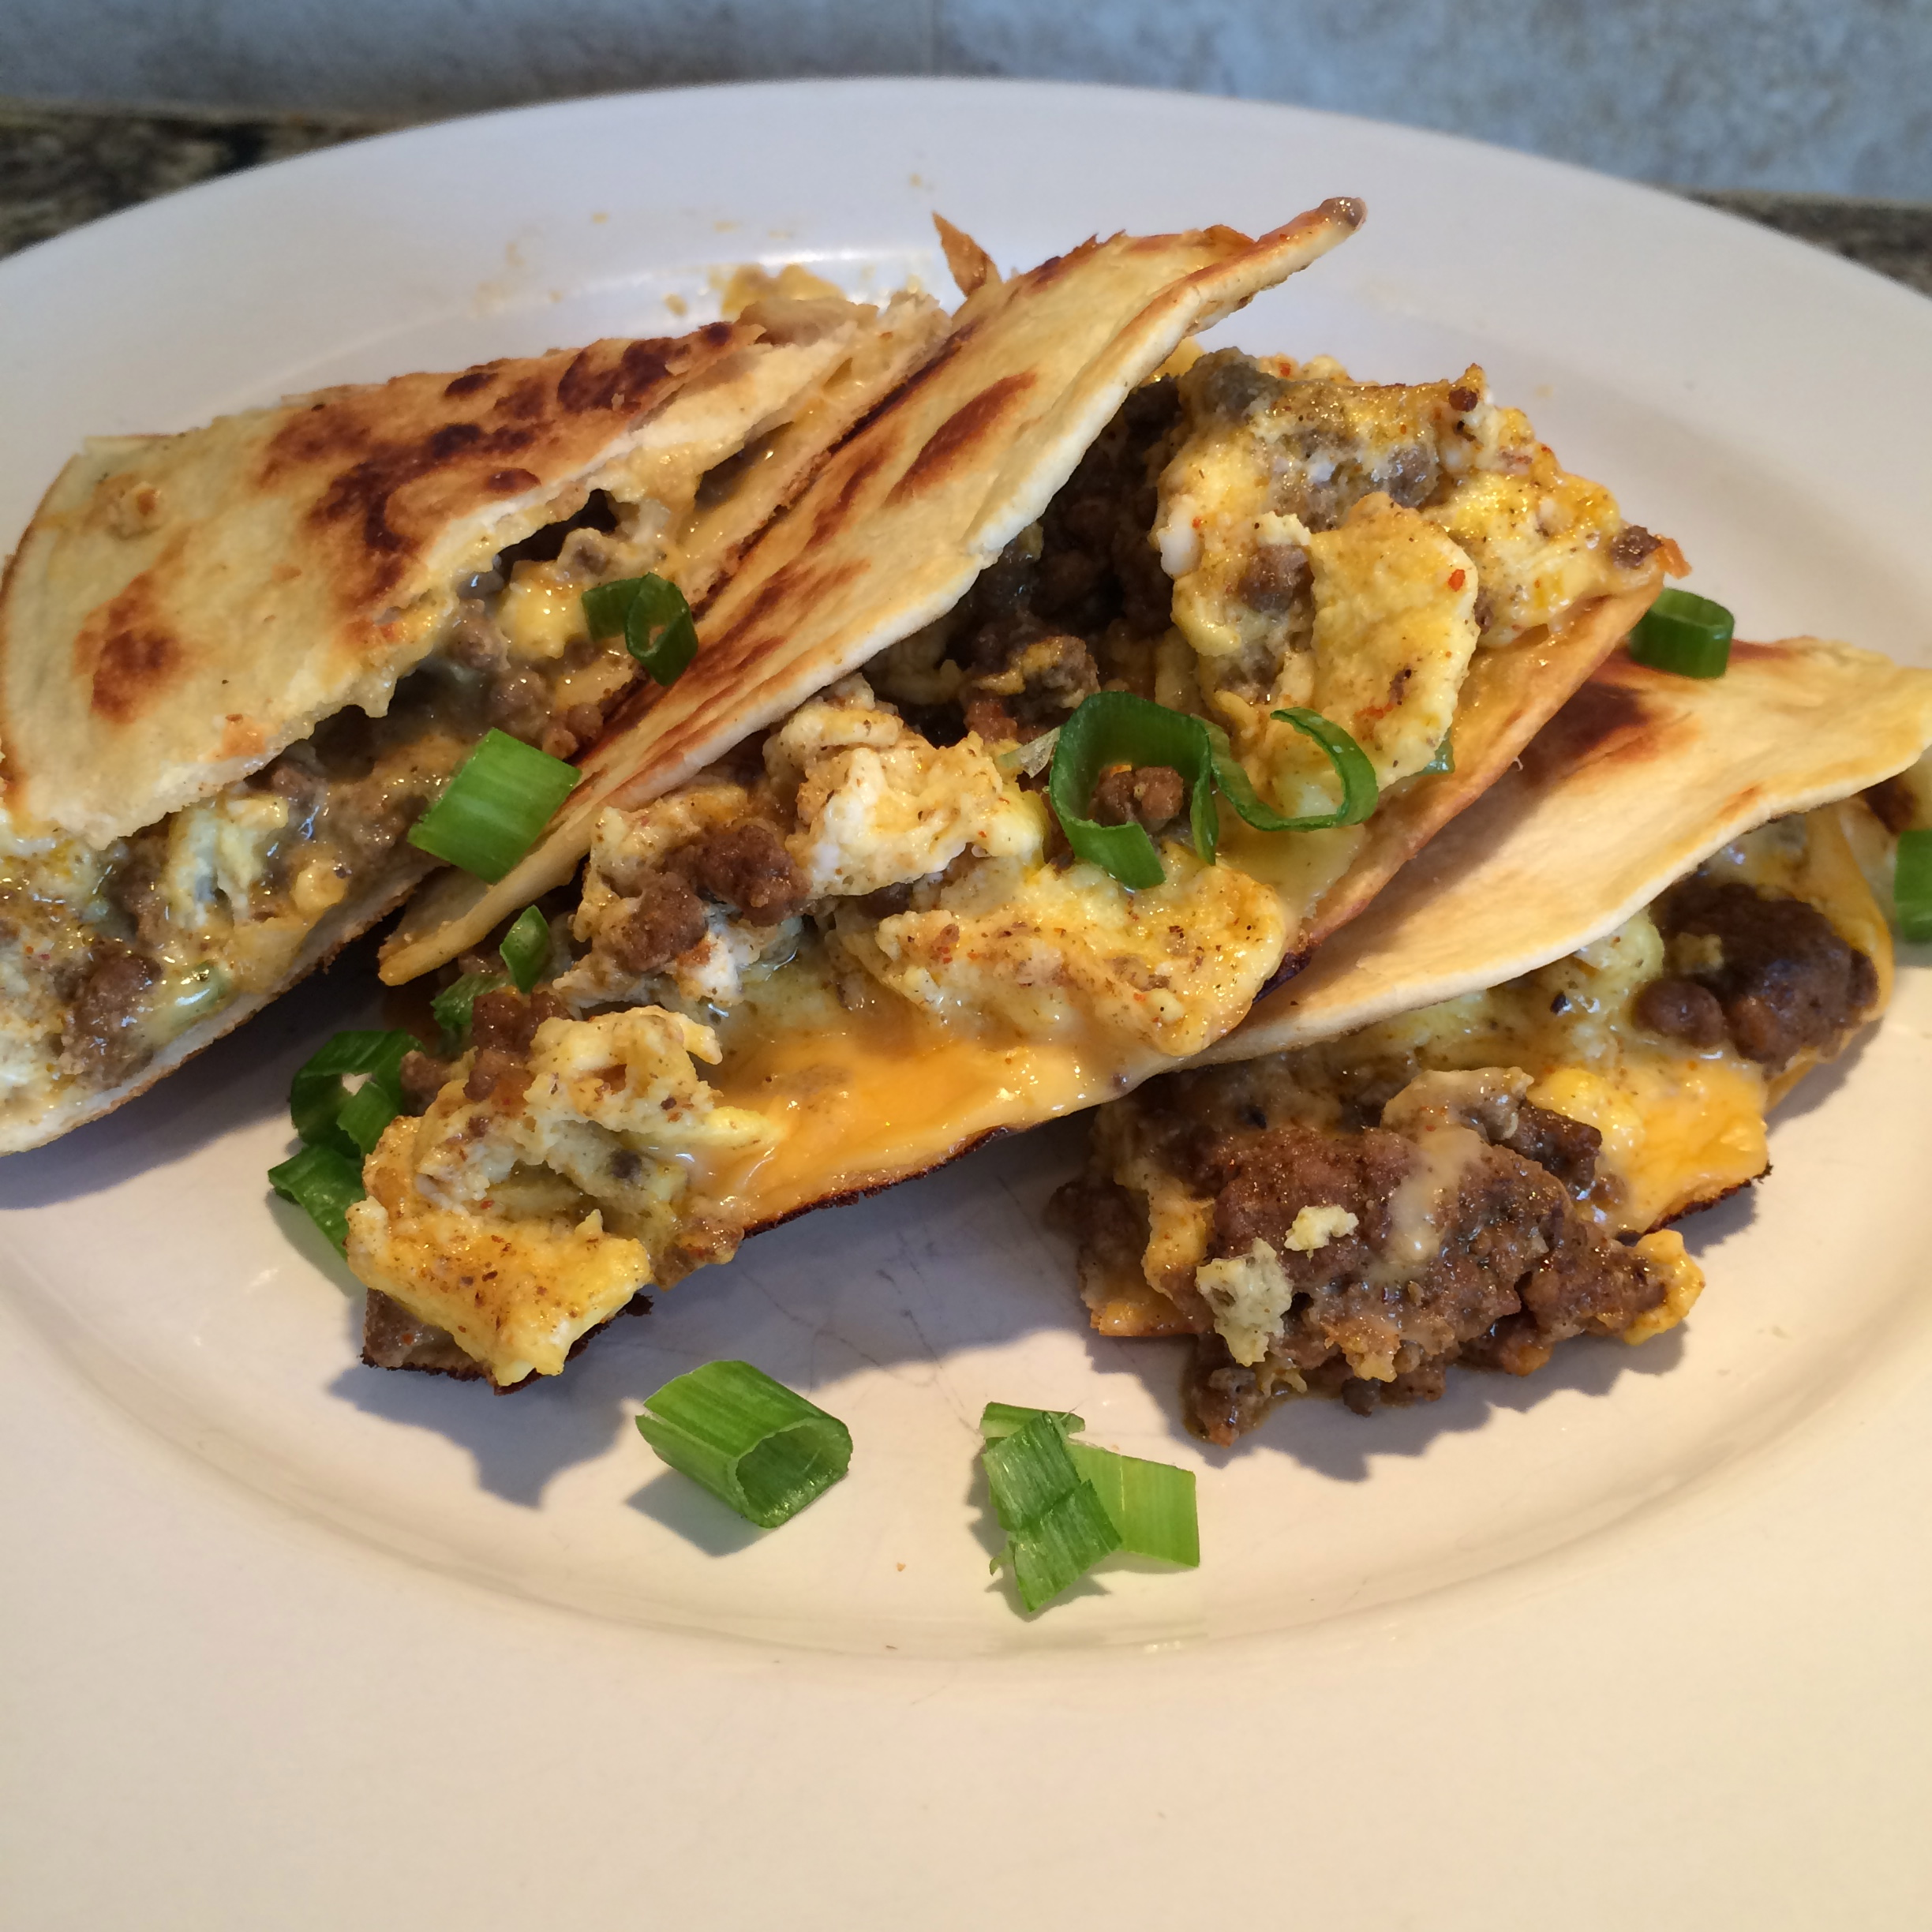 Egg and Sausage Quesadilla